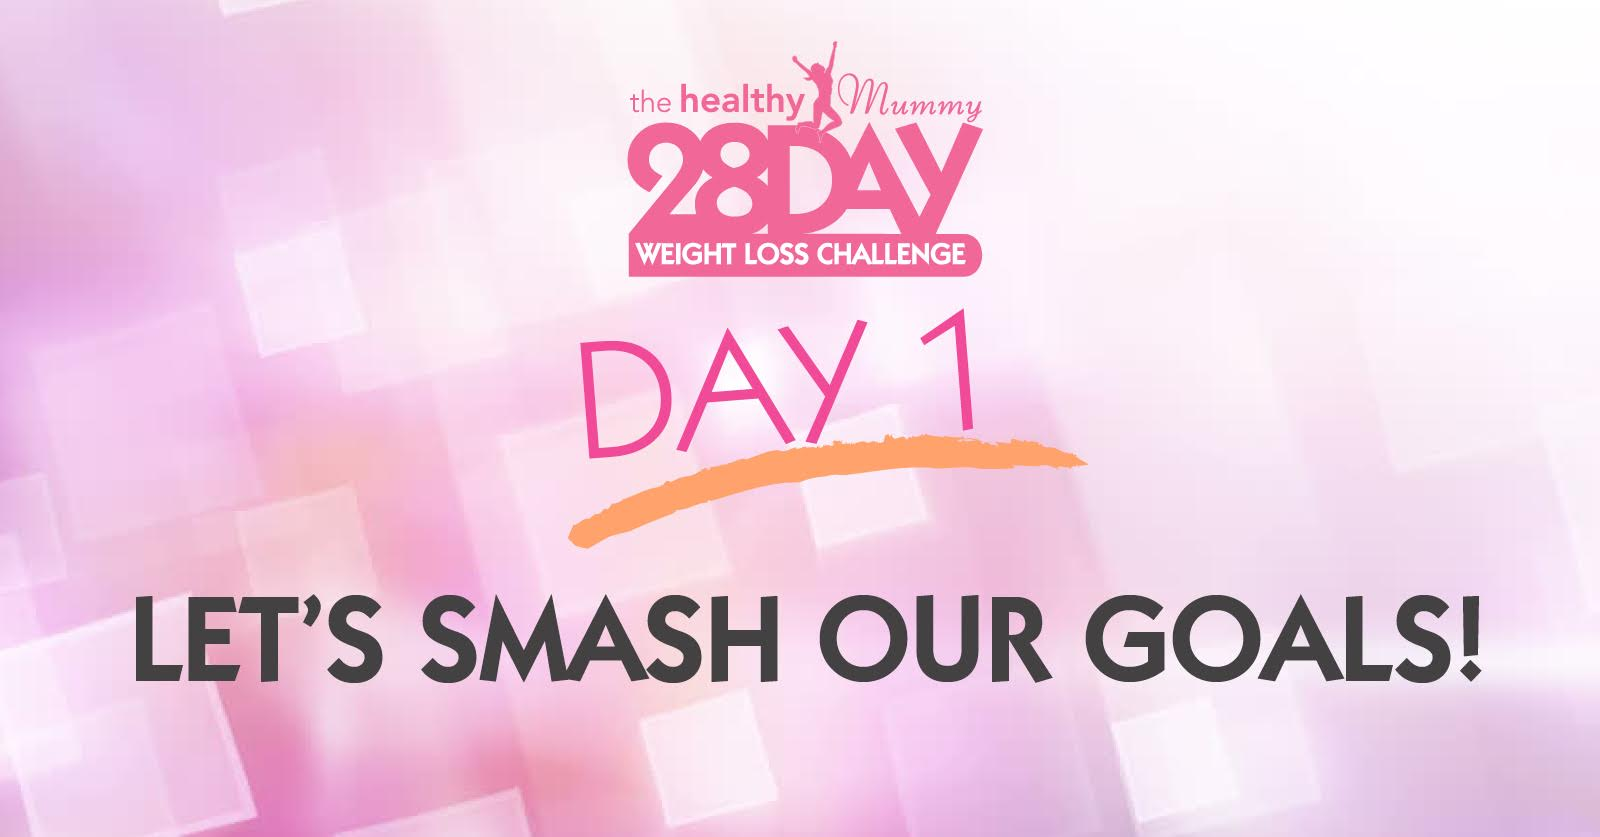 winter weight loss 28 day challenge